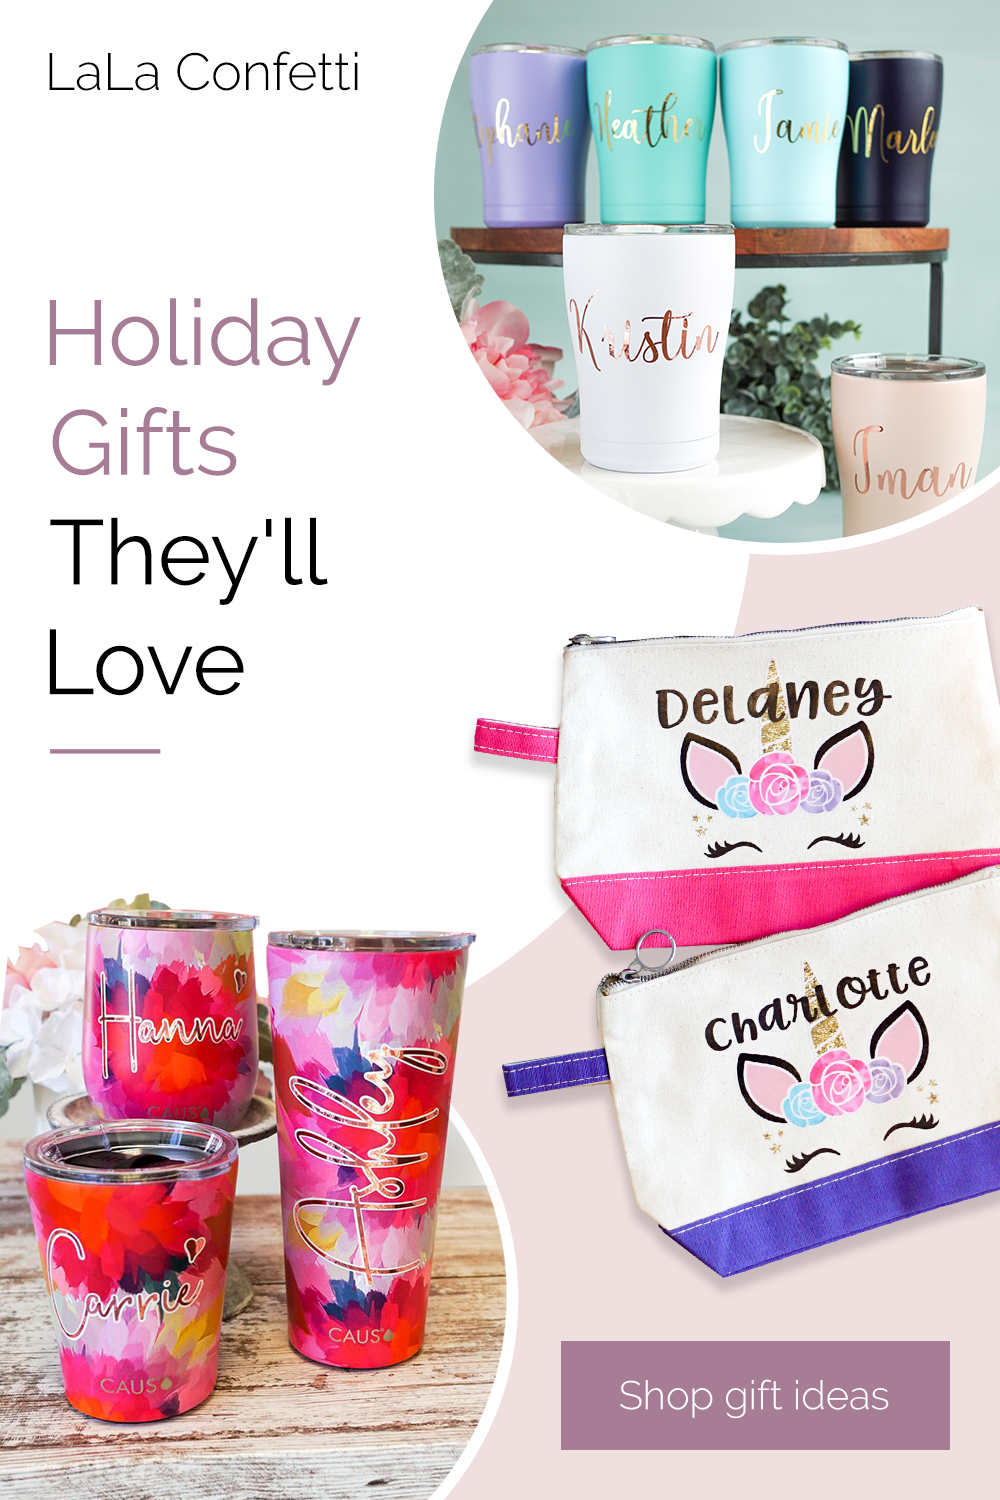 Holiday Gifts They Ll Love In 2020 Holiday Personalized Gifts Personalized Gifts For Her Christmas Gifts For Friends